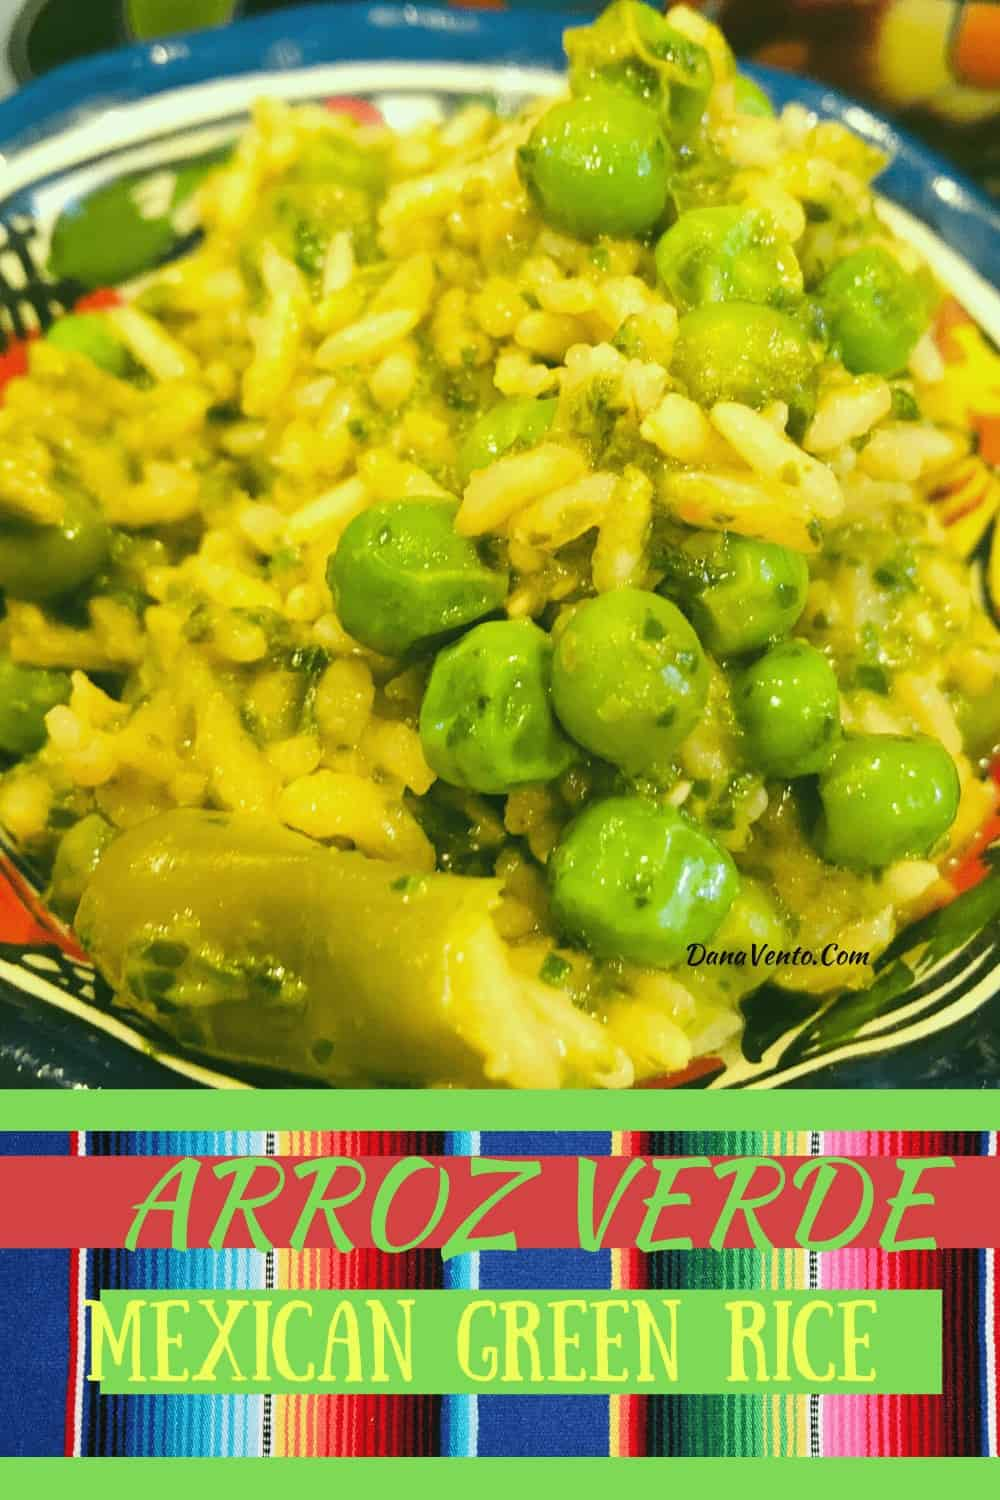 Mexican Green Rice (arroz verde) in bowl